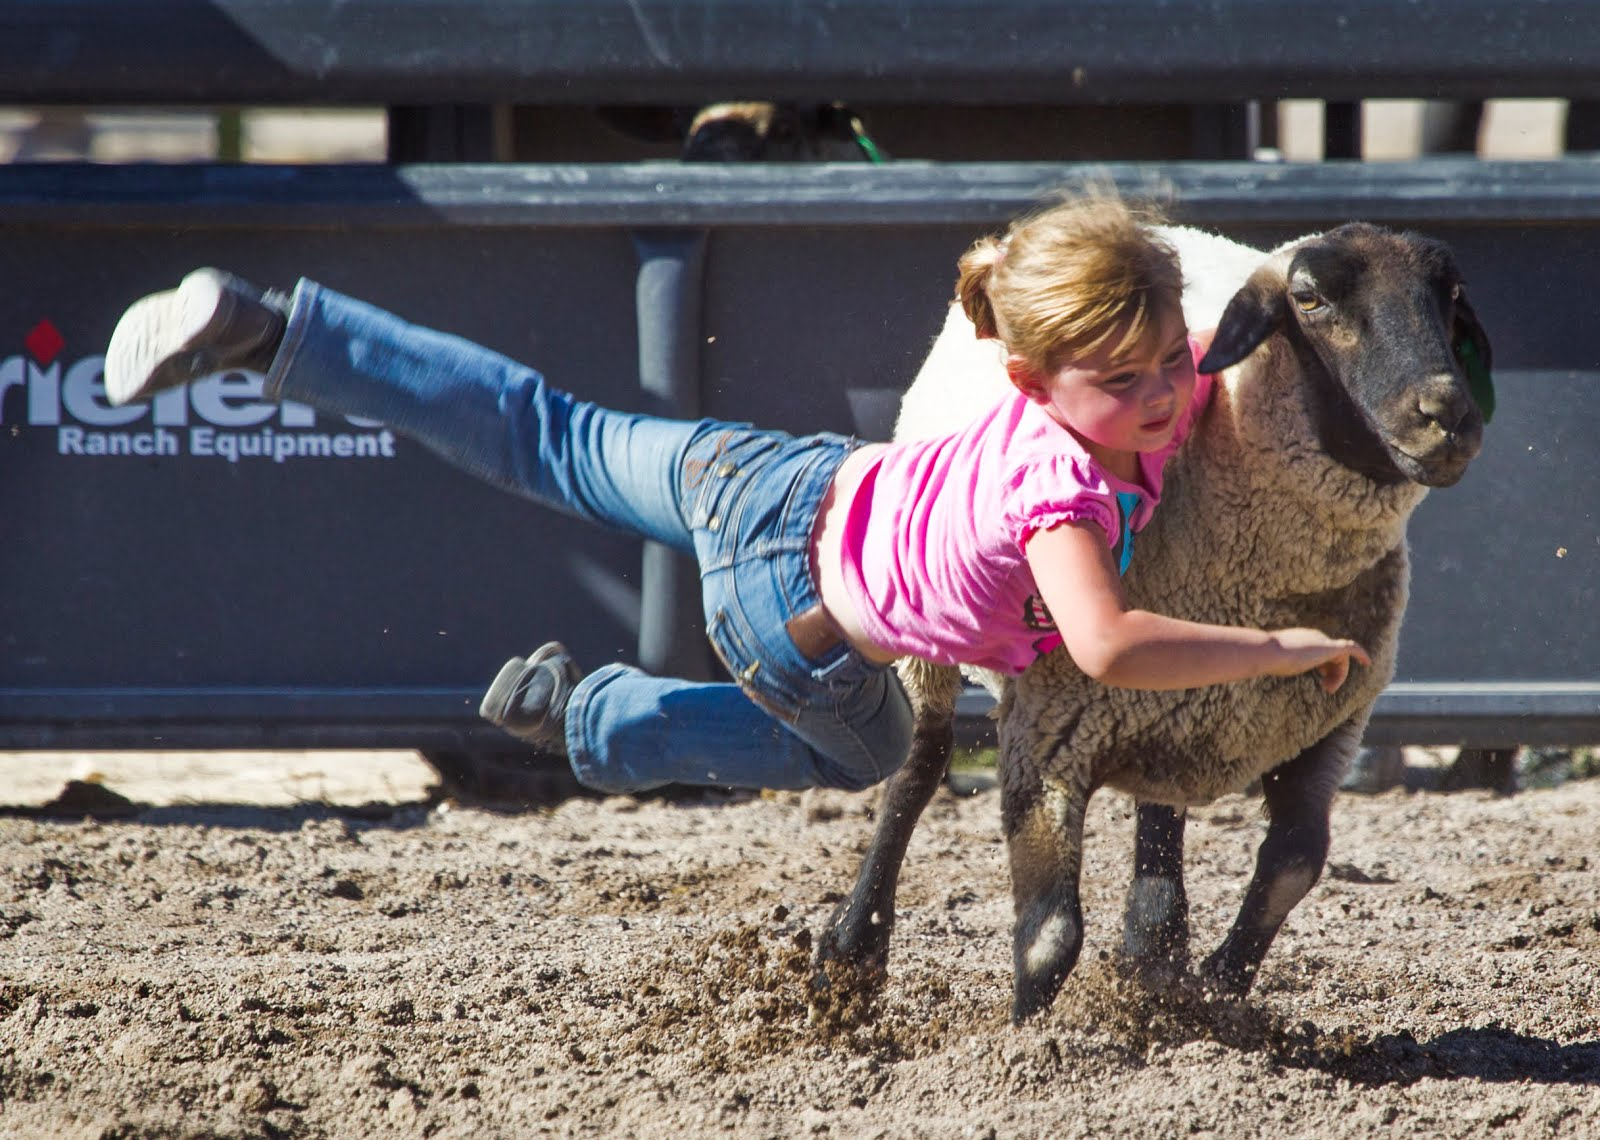 Big turnout for annual fair and rodeo